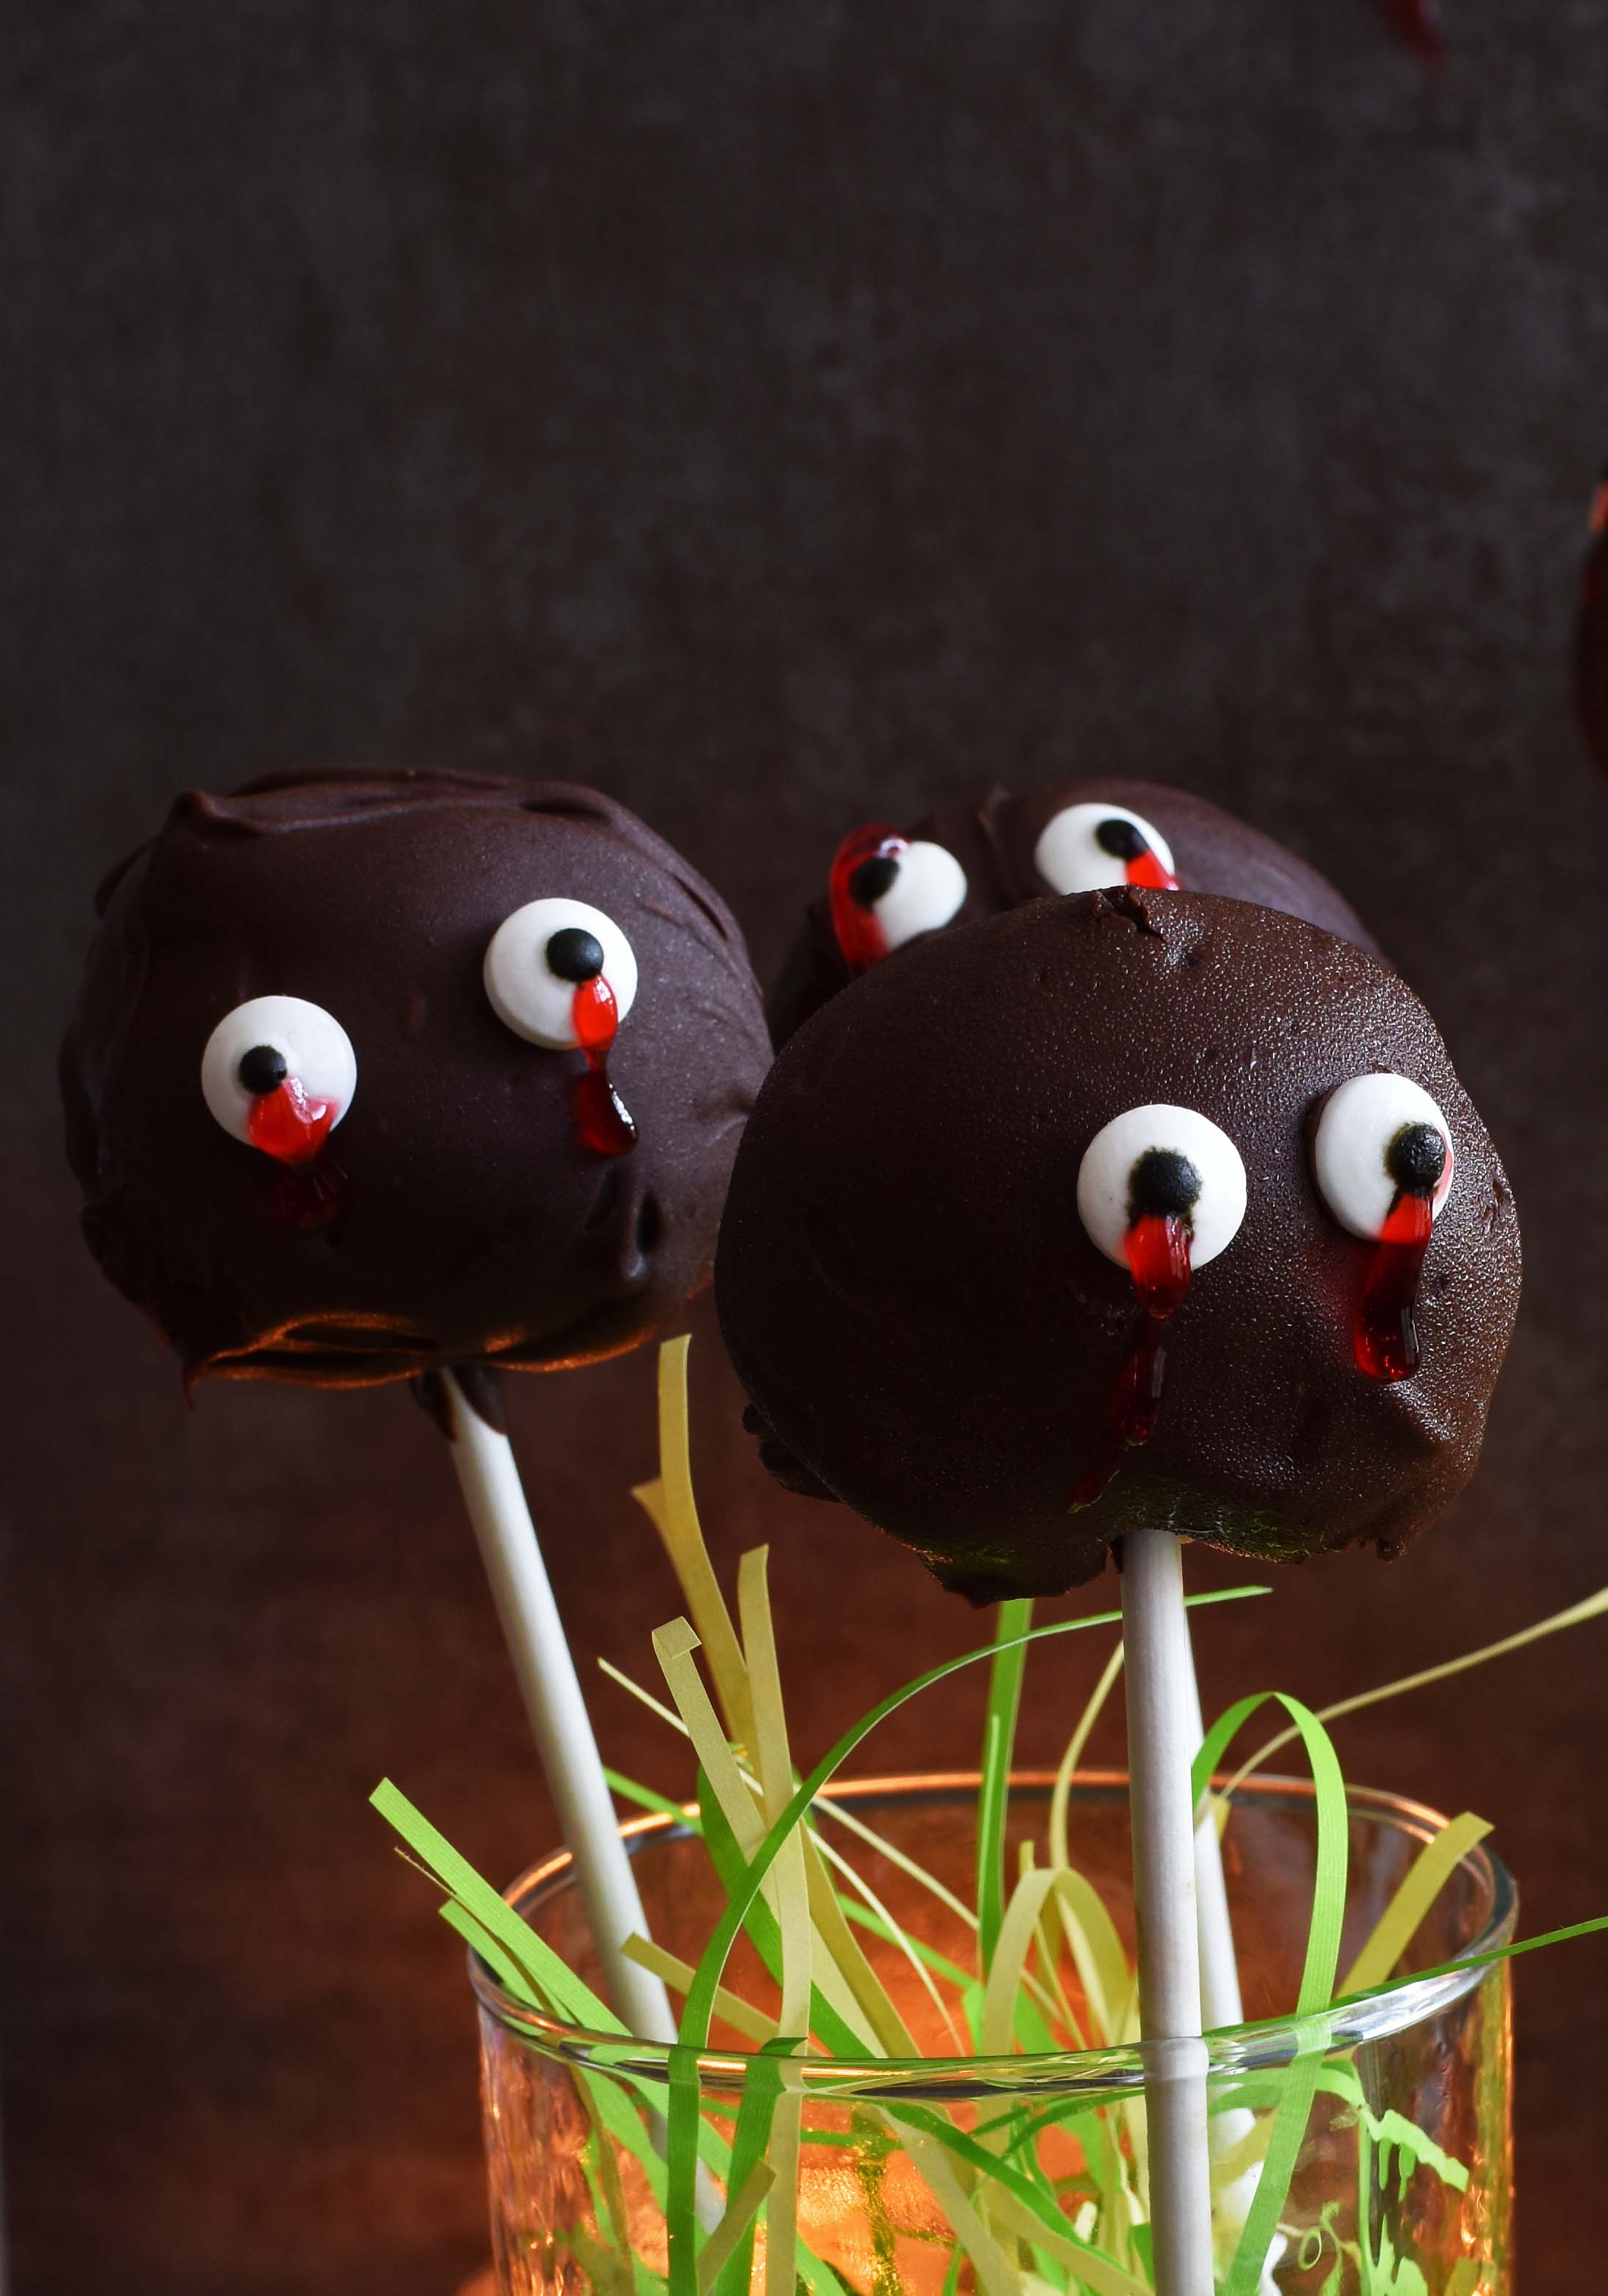 Chocolate Monster Lollipops- Pepper Delight #pepperdelightblog #recipe #lollipop #halloween #eggless #chocolate #no baking #fallrecipes